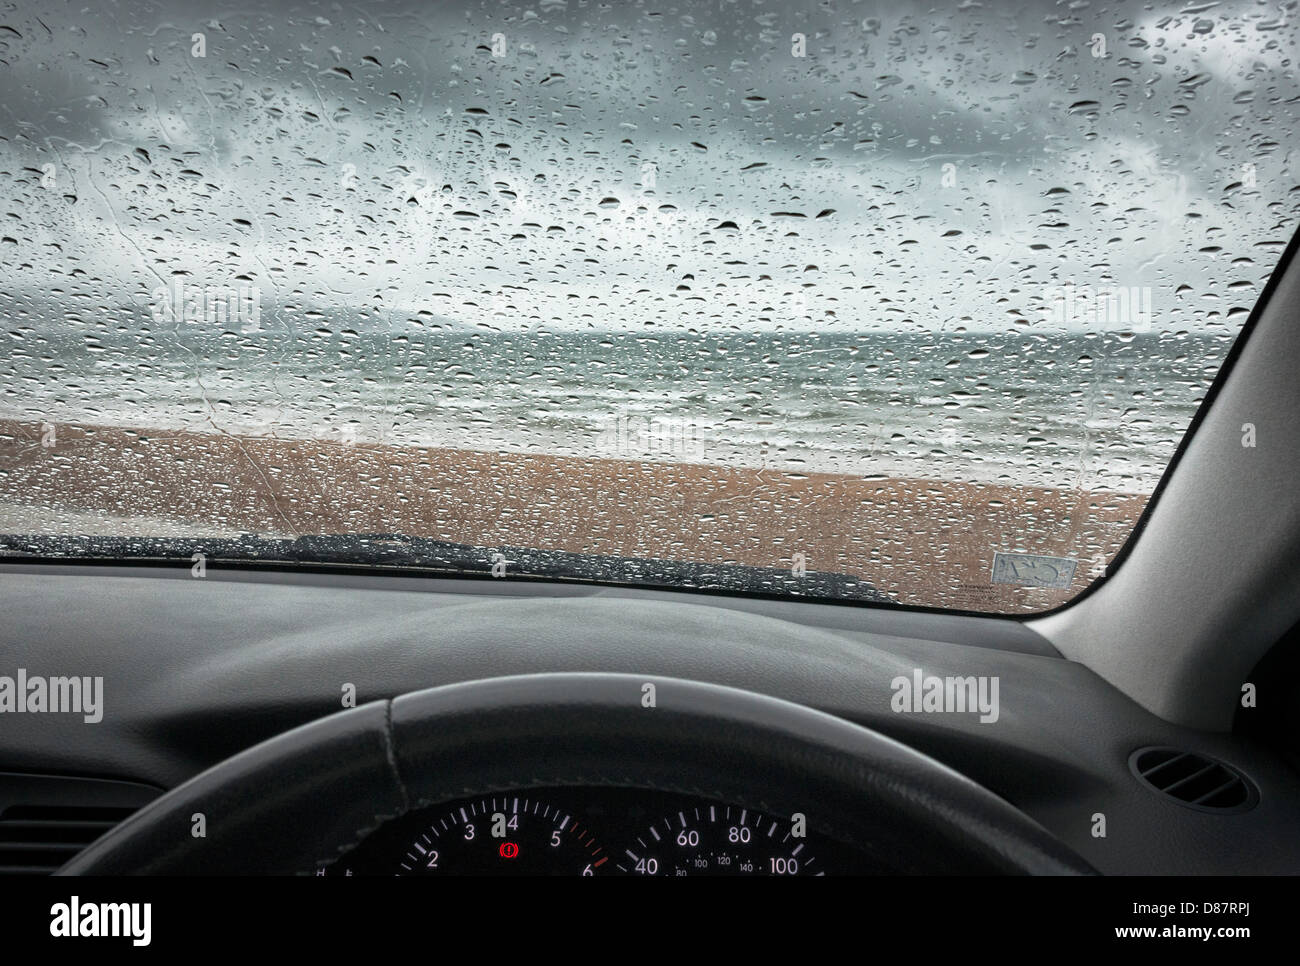 British seaside beach on a rainy day through the car windshield / windscreen - Stock Image